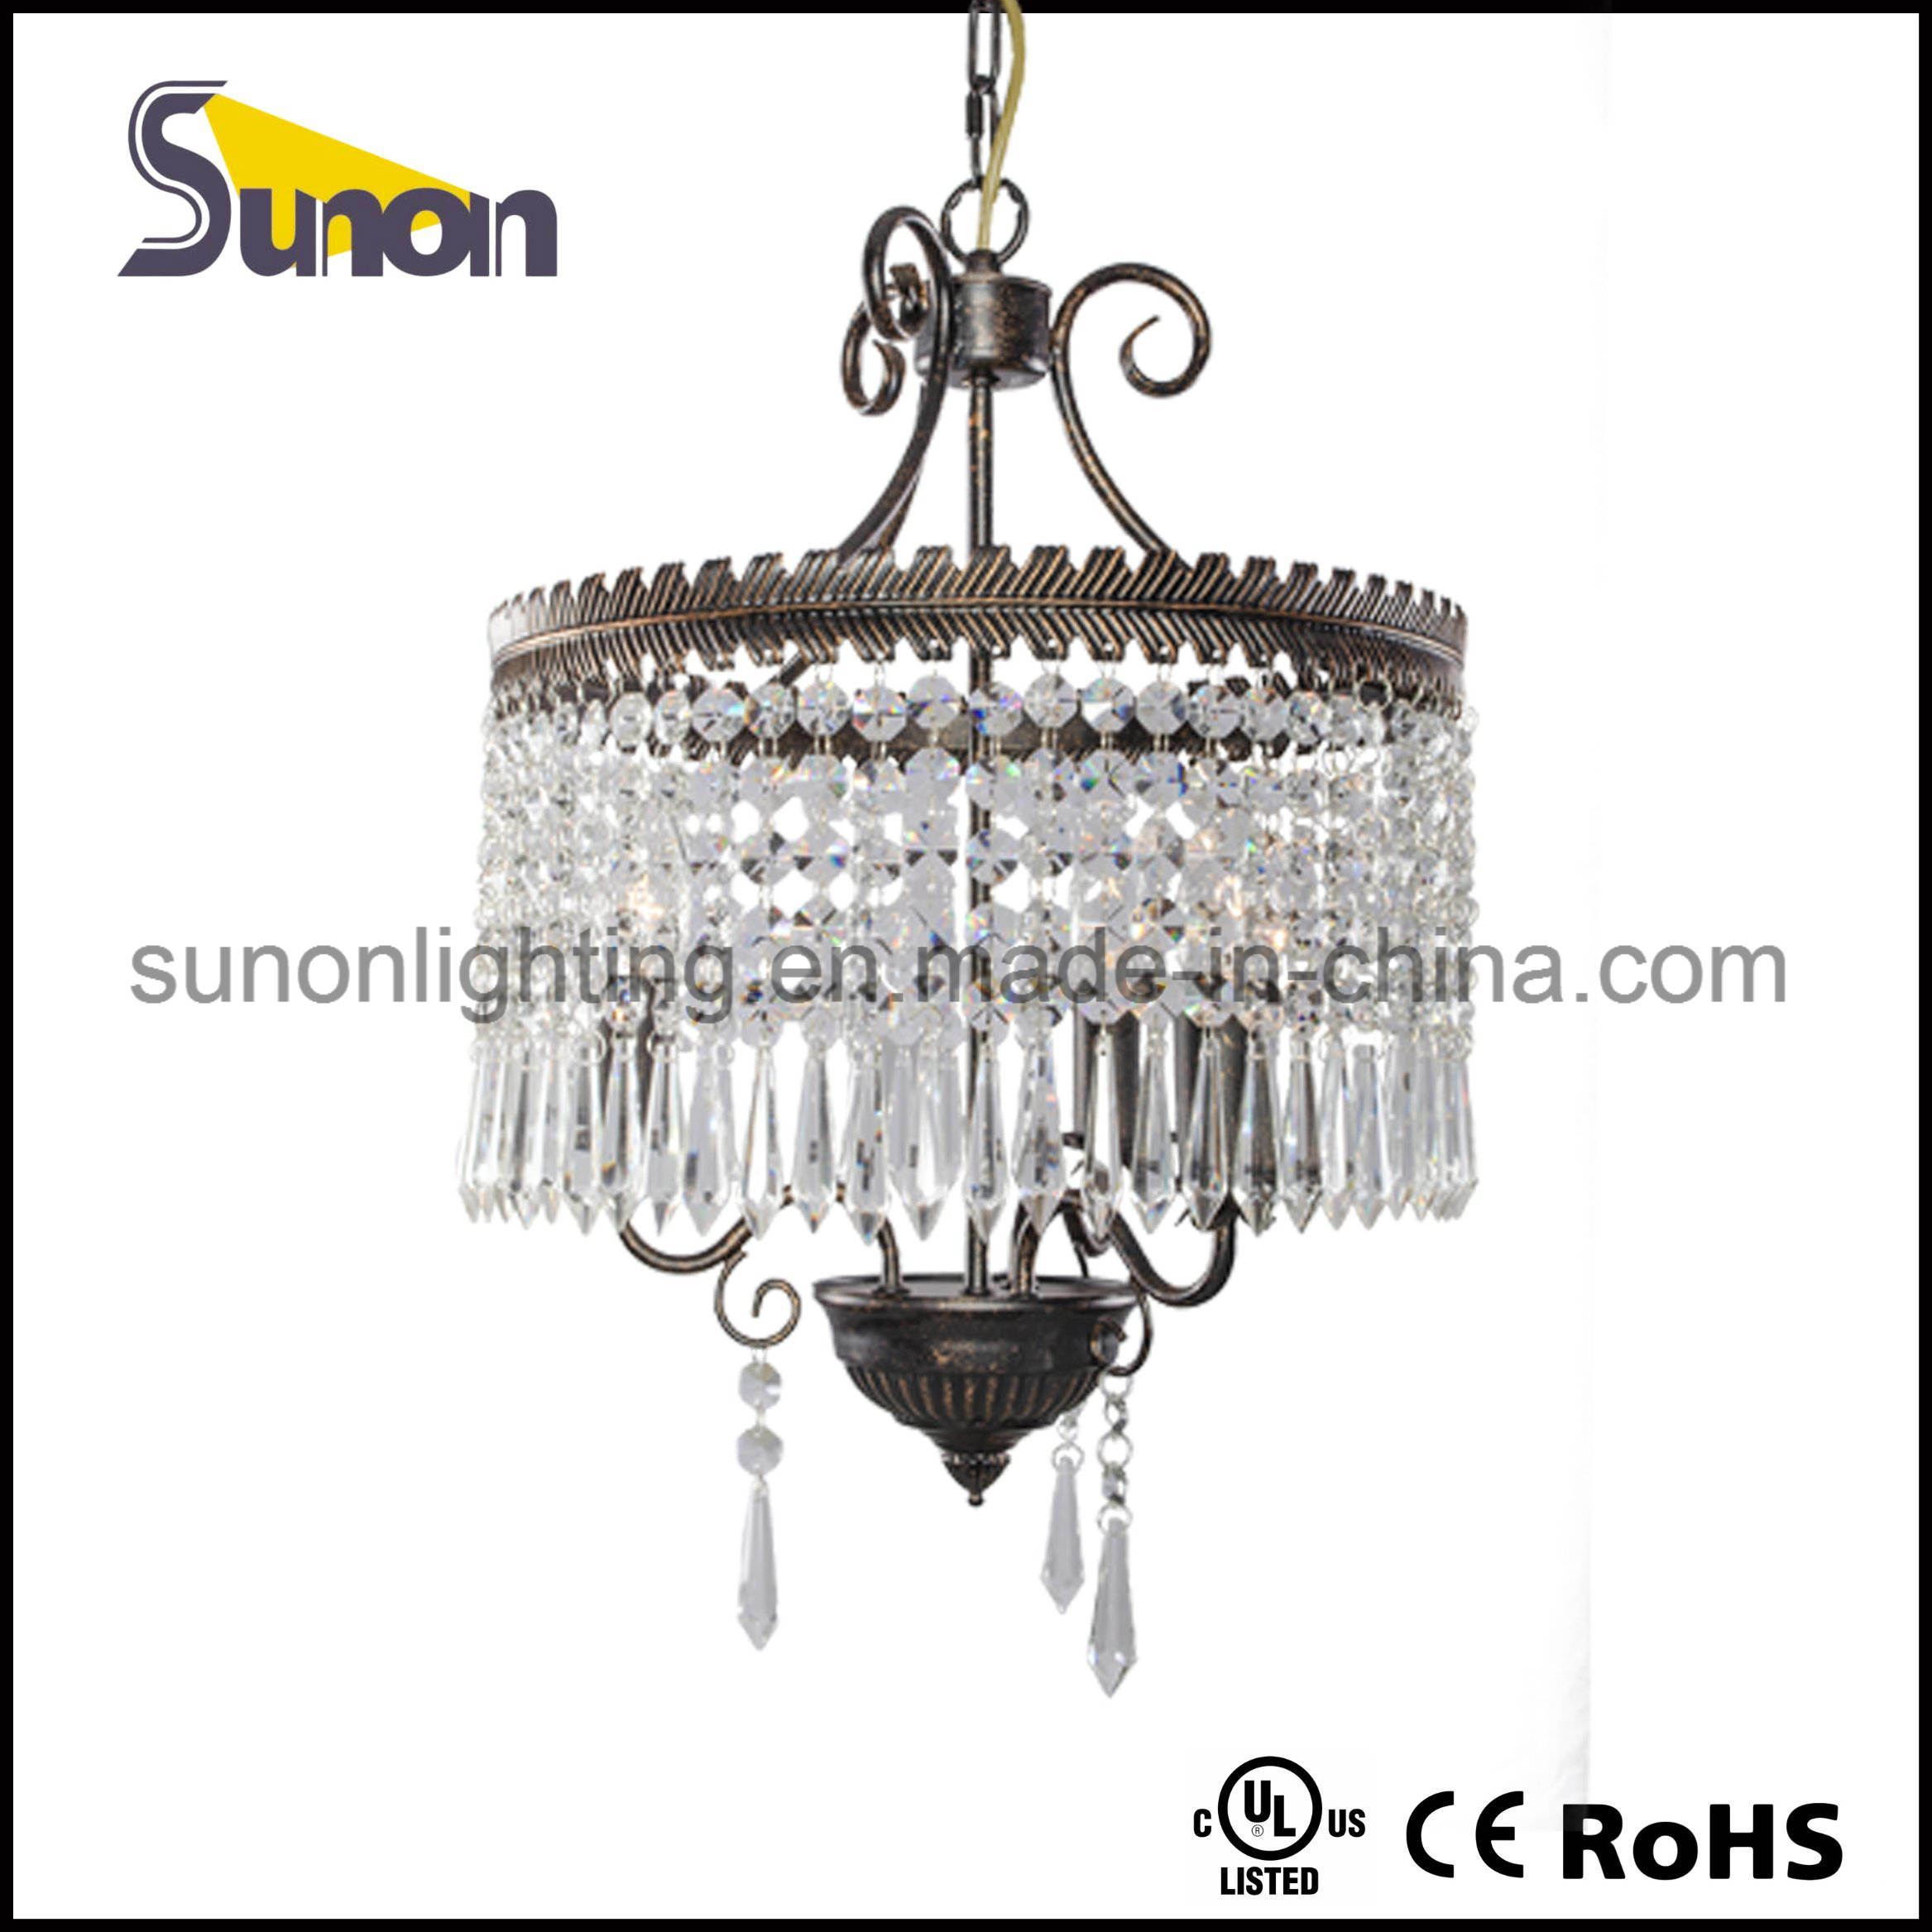 Mini Glass Crystal Swag Chandelier Lighting with 3 Lights